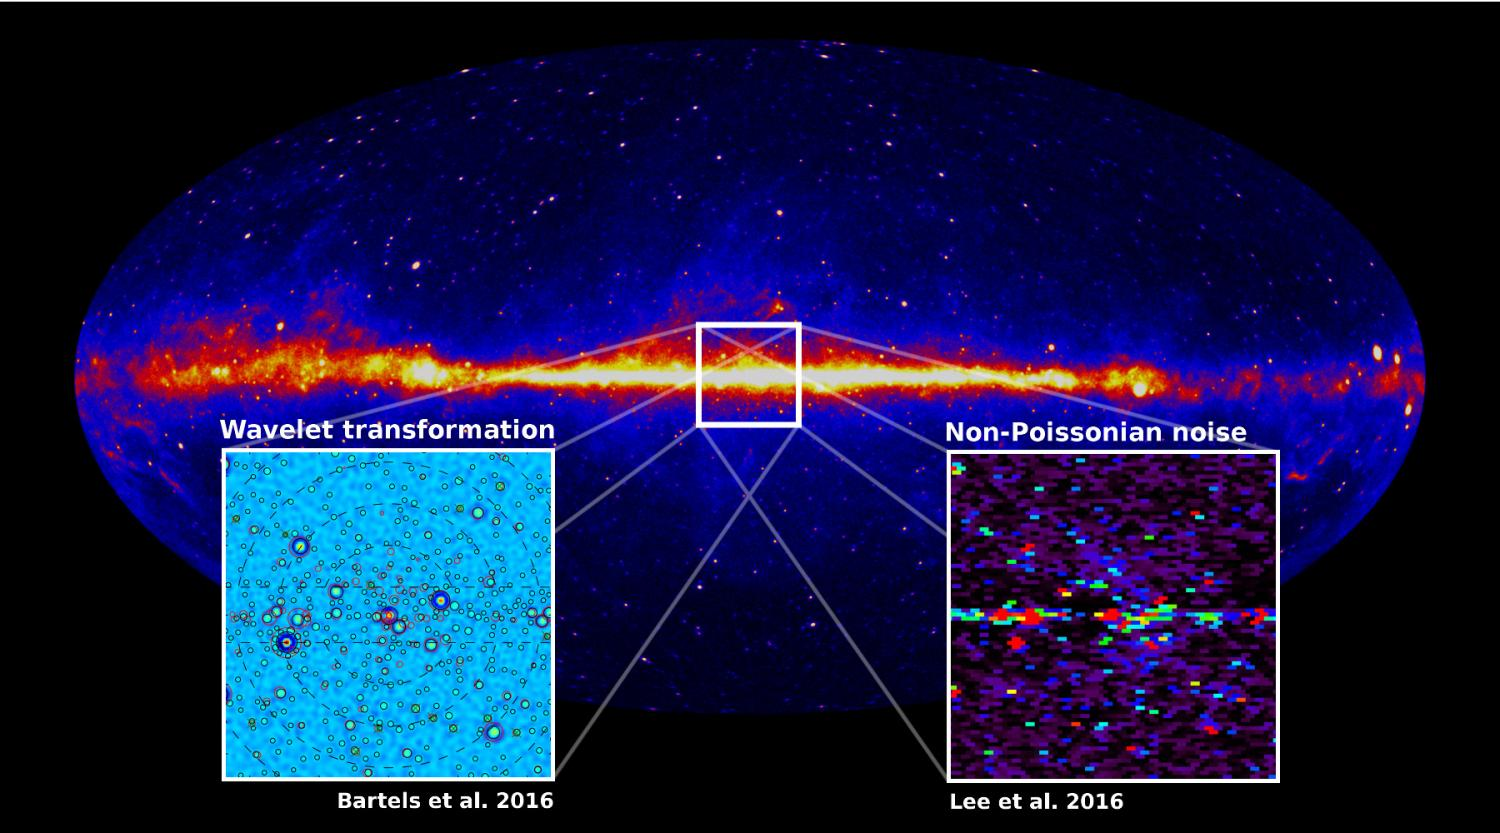 galactic dark matter - We have also studied gamma rays produced within the Milky Way galaxy and found evidence for a new population of sources near the Galactic Center. These unresolved sources can explain an excess of high-energy photons that were previously attributed to dark matter. This analysis harnesses basic ideas from image processing to distinguish photons that are 'clumpy' rather than smoothly distributed in the sky. One possibility is that these sources are millisecond pulsars that were dragged to the heart of our Galaxy as it formed.[In the Press]